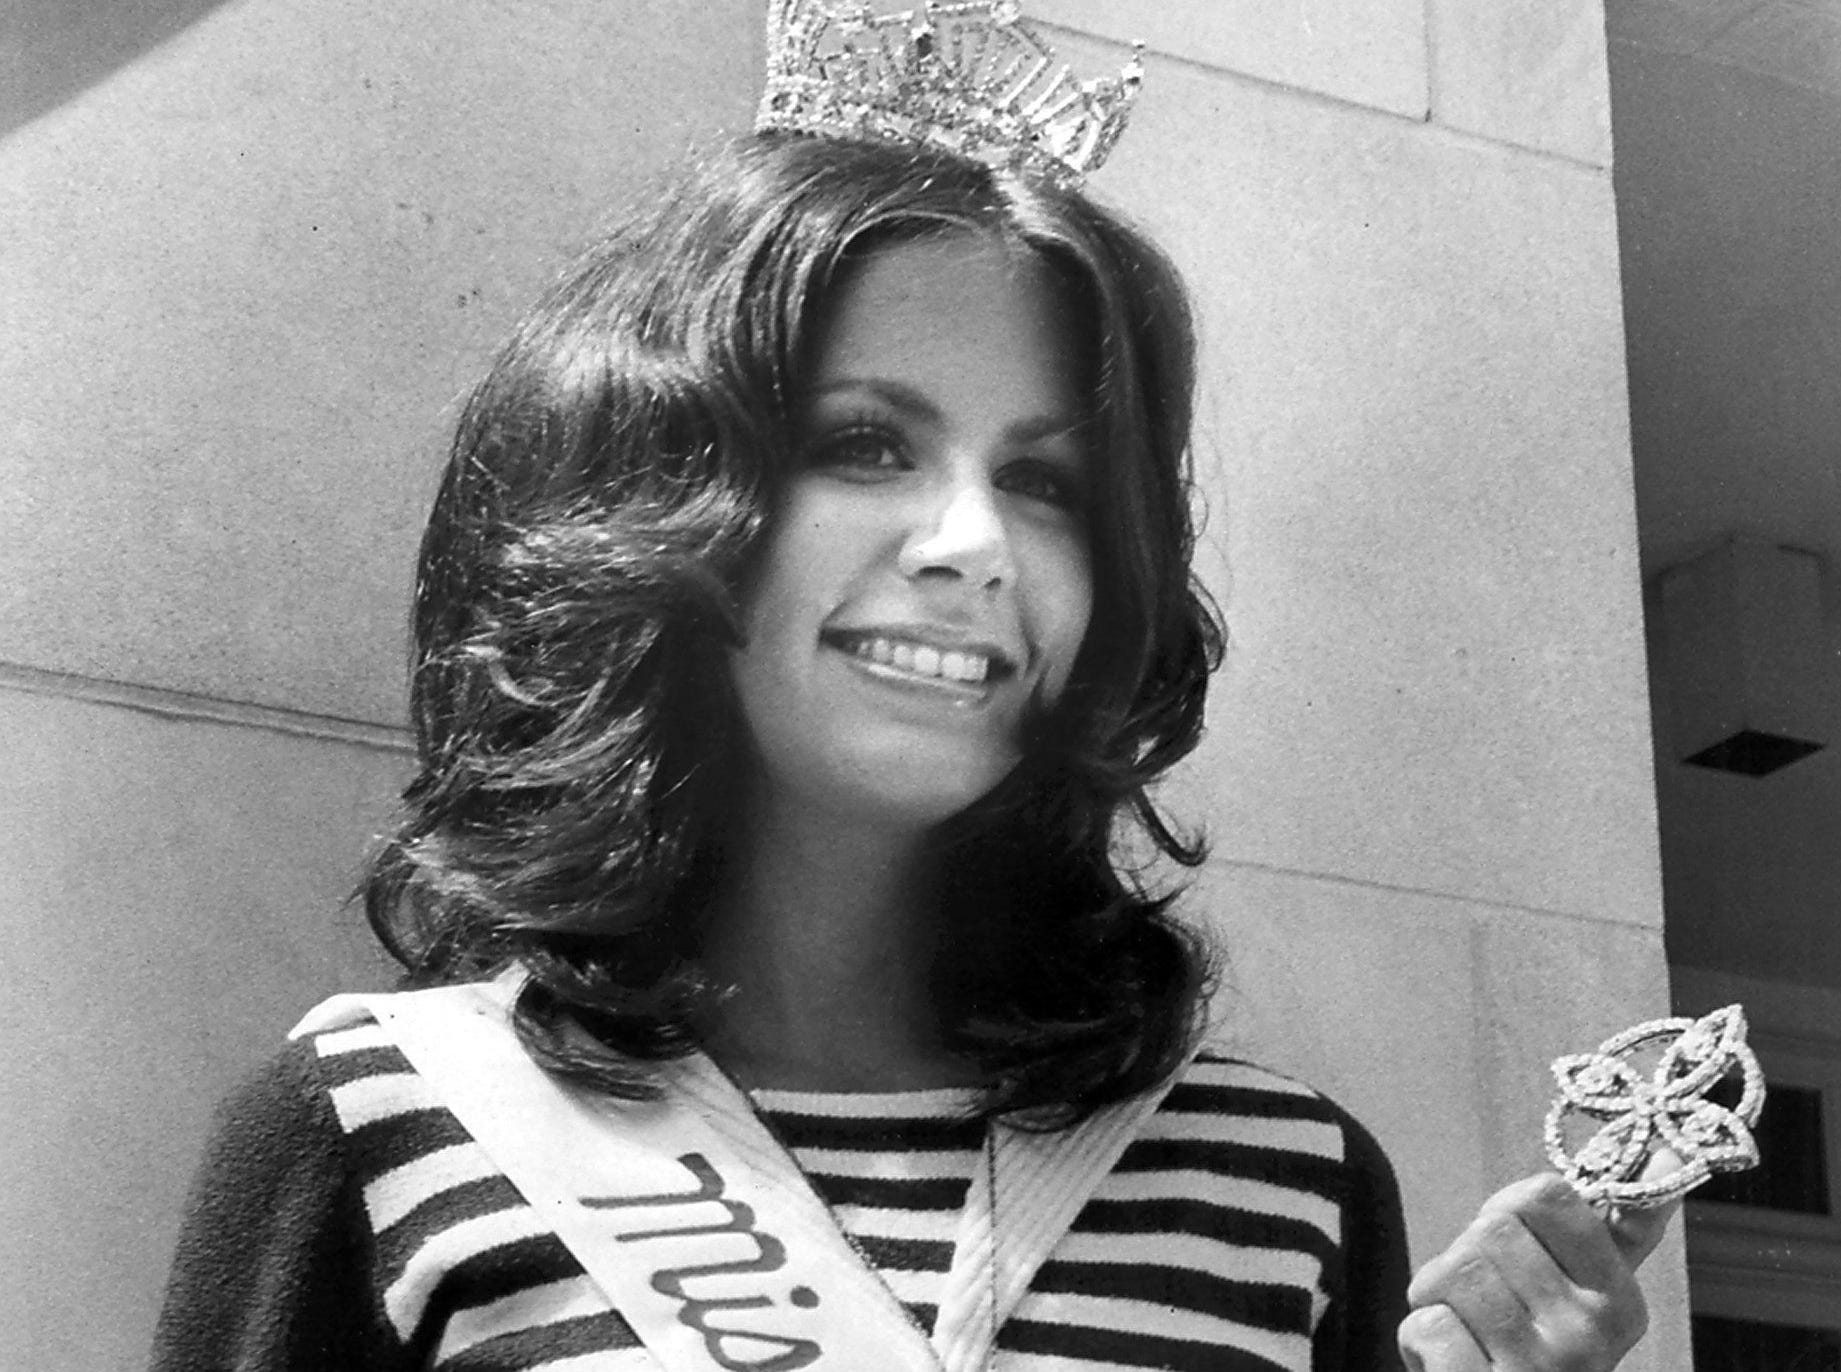 Anne Randle Galloway was all smiles June 17, 1973, as she was named Miss Tennessee the night before in Jackson, Tenn. The blue-eyed, 5-foot-6 beauty is a 20-year-old senior at Memphis State University. Her parents are Mr. and Mrs. George H. Galloway of Knoxville. Betty Ann Hunt, Miss Memphis State, was first runner-up.